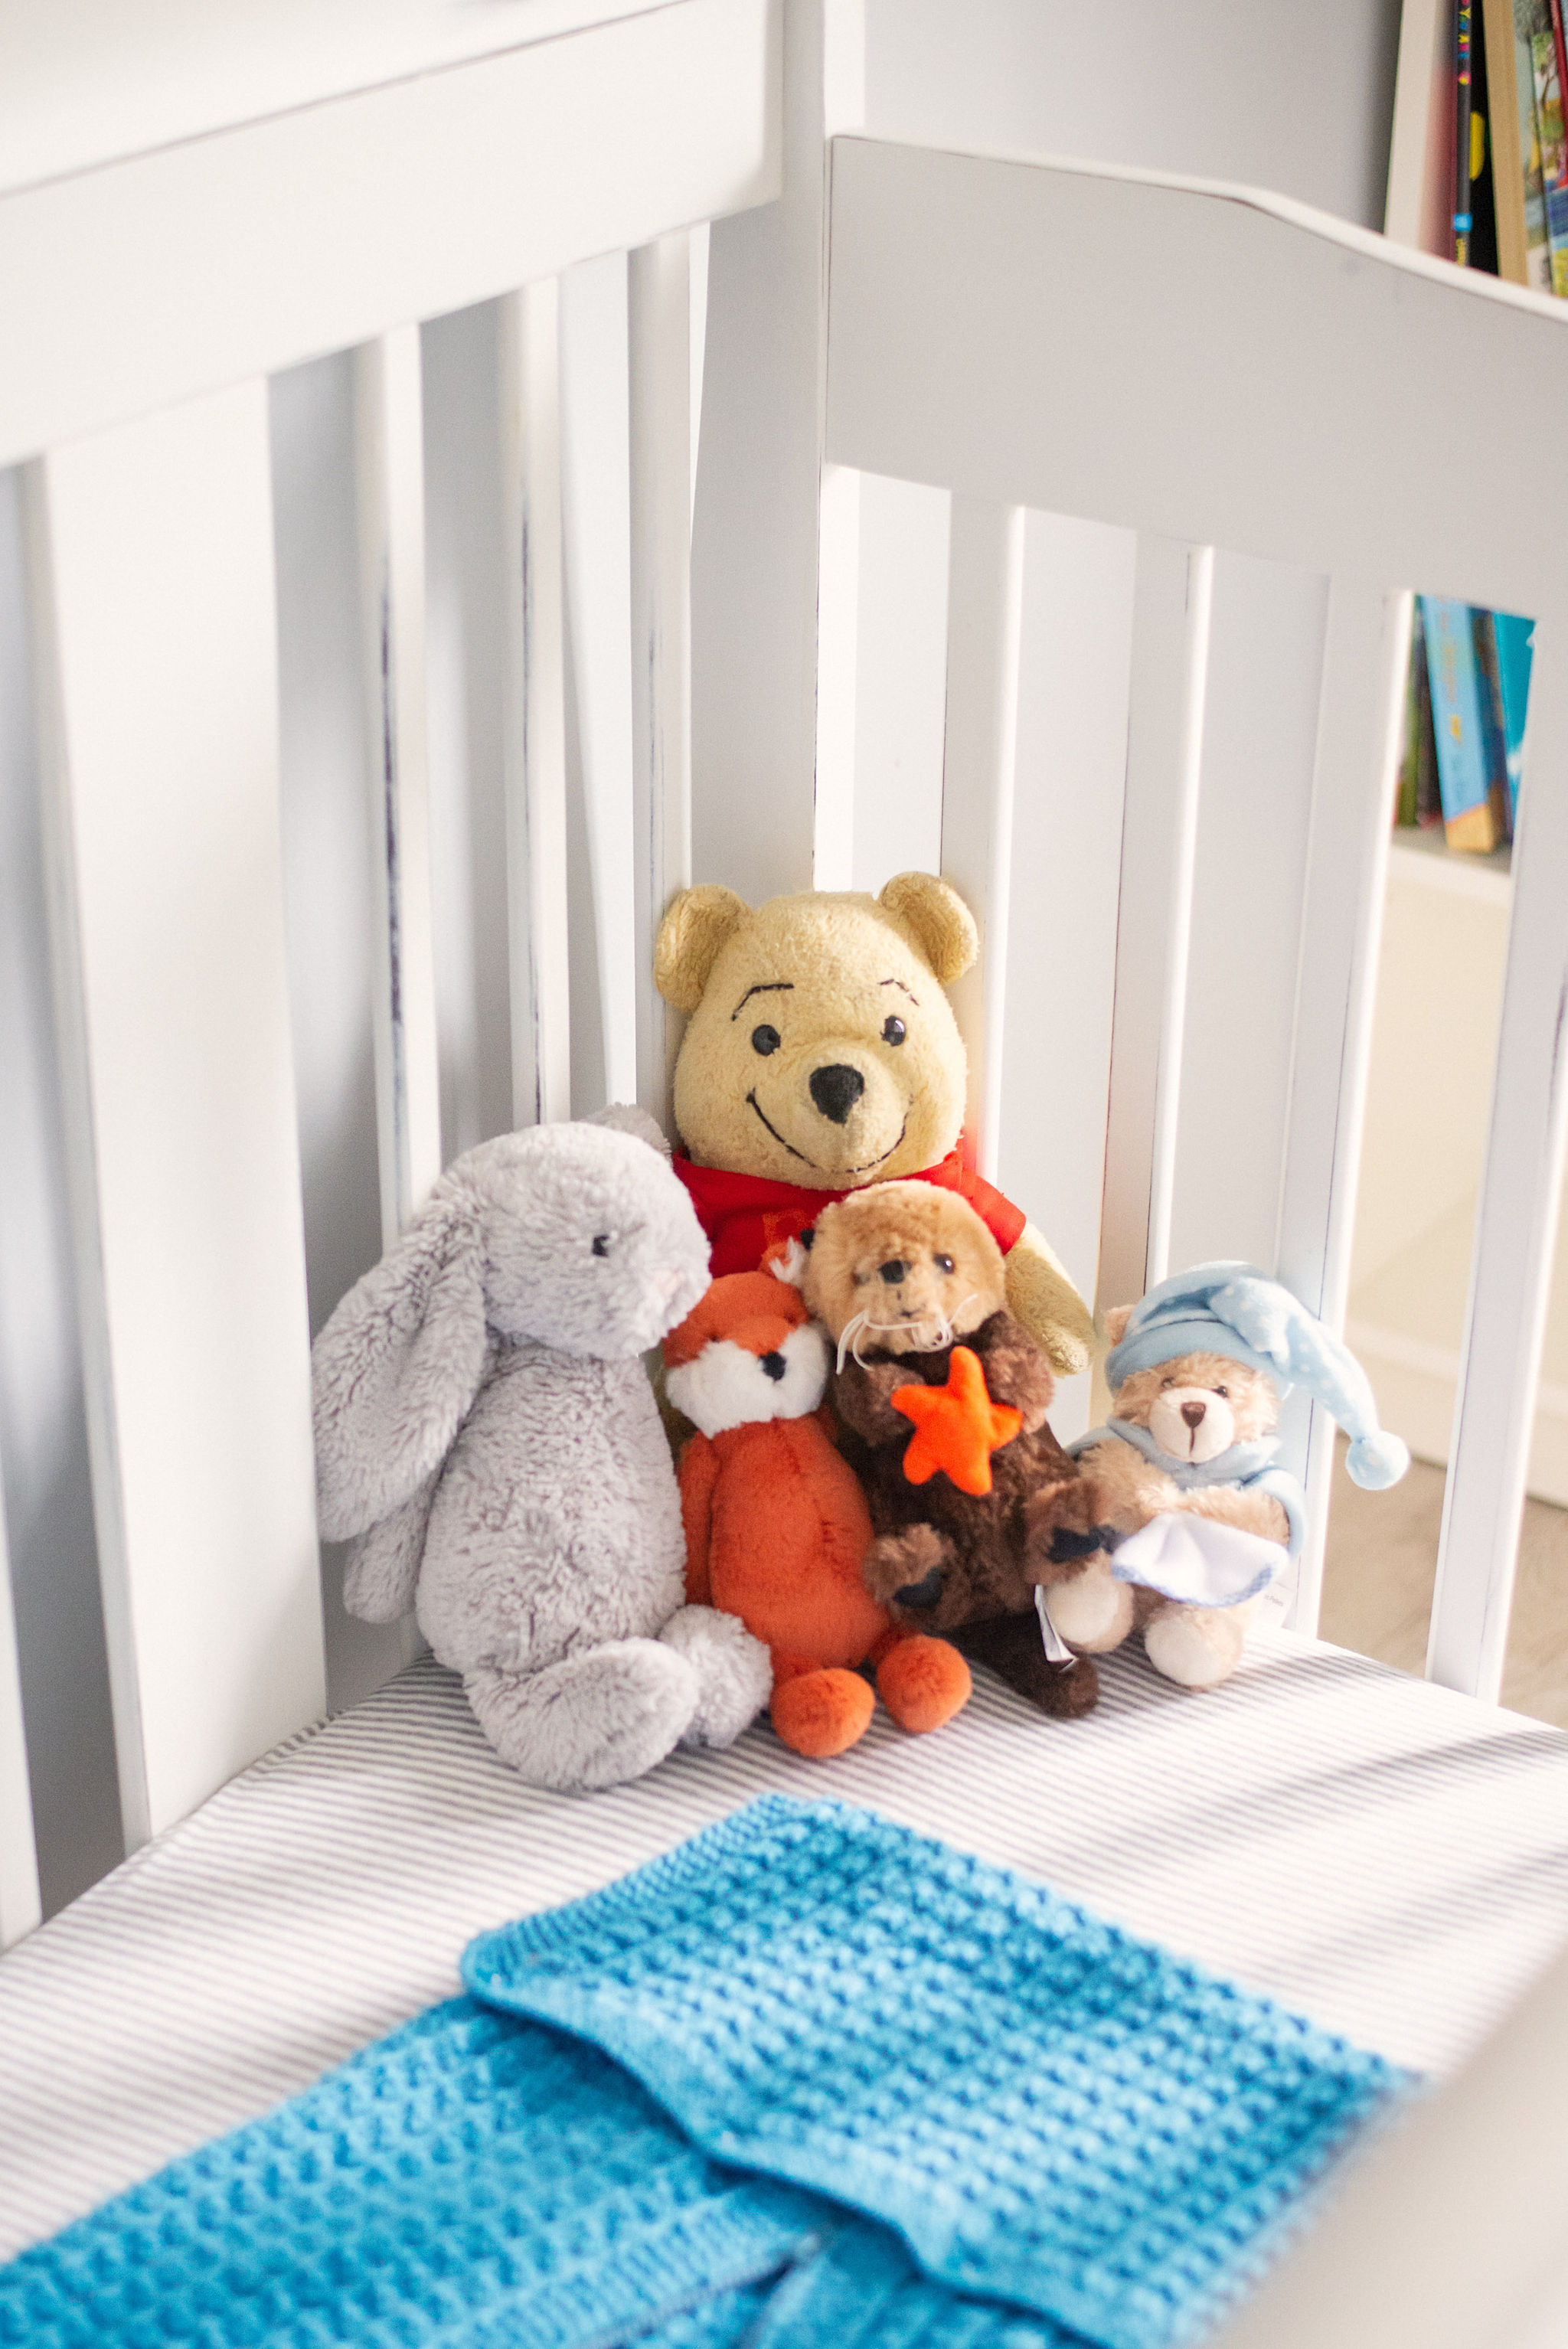 Cute stuffed animals sitting up against the inner corner of a baby crib.